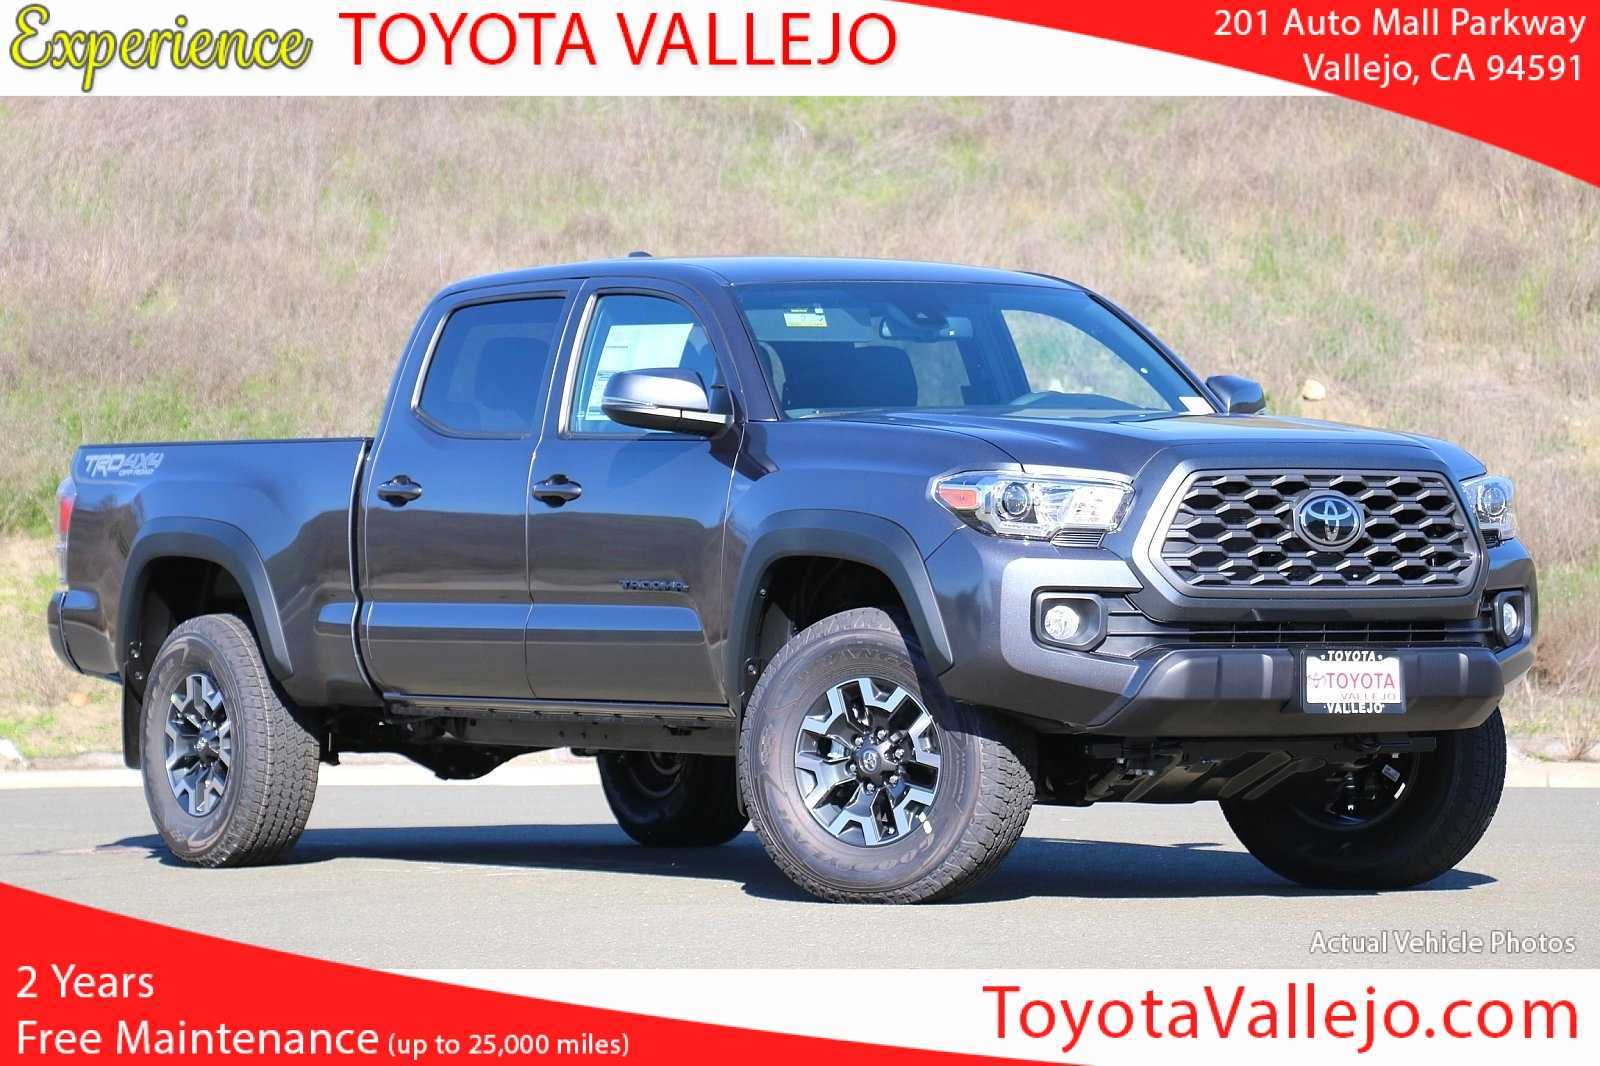 New 2020 Toyota Tacoma Double Cab Automatic Long Bed TRD Offroad